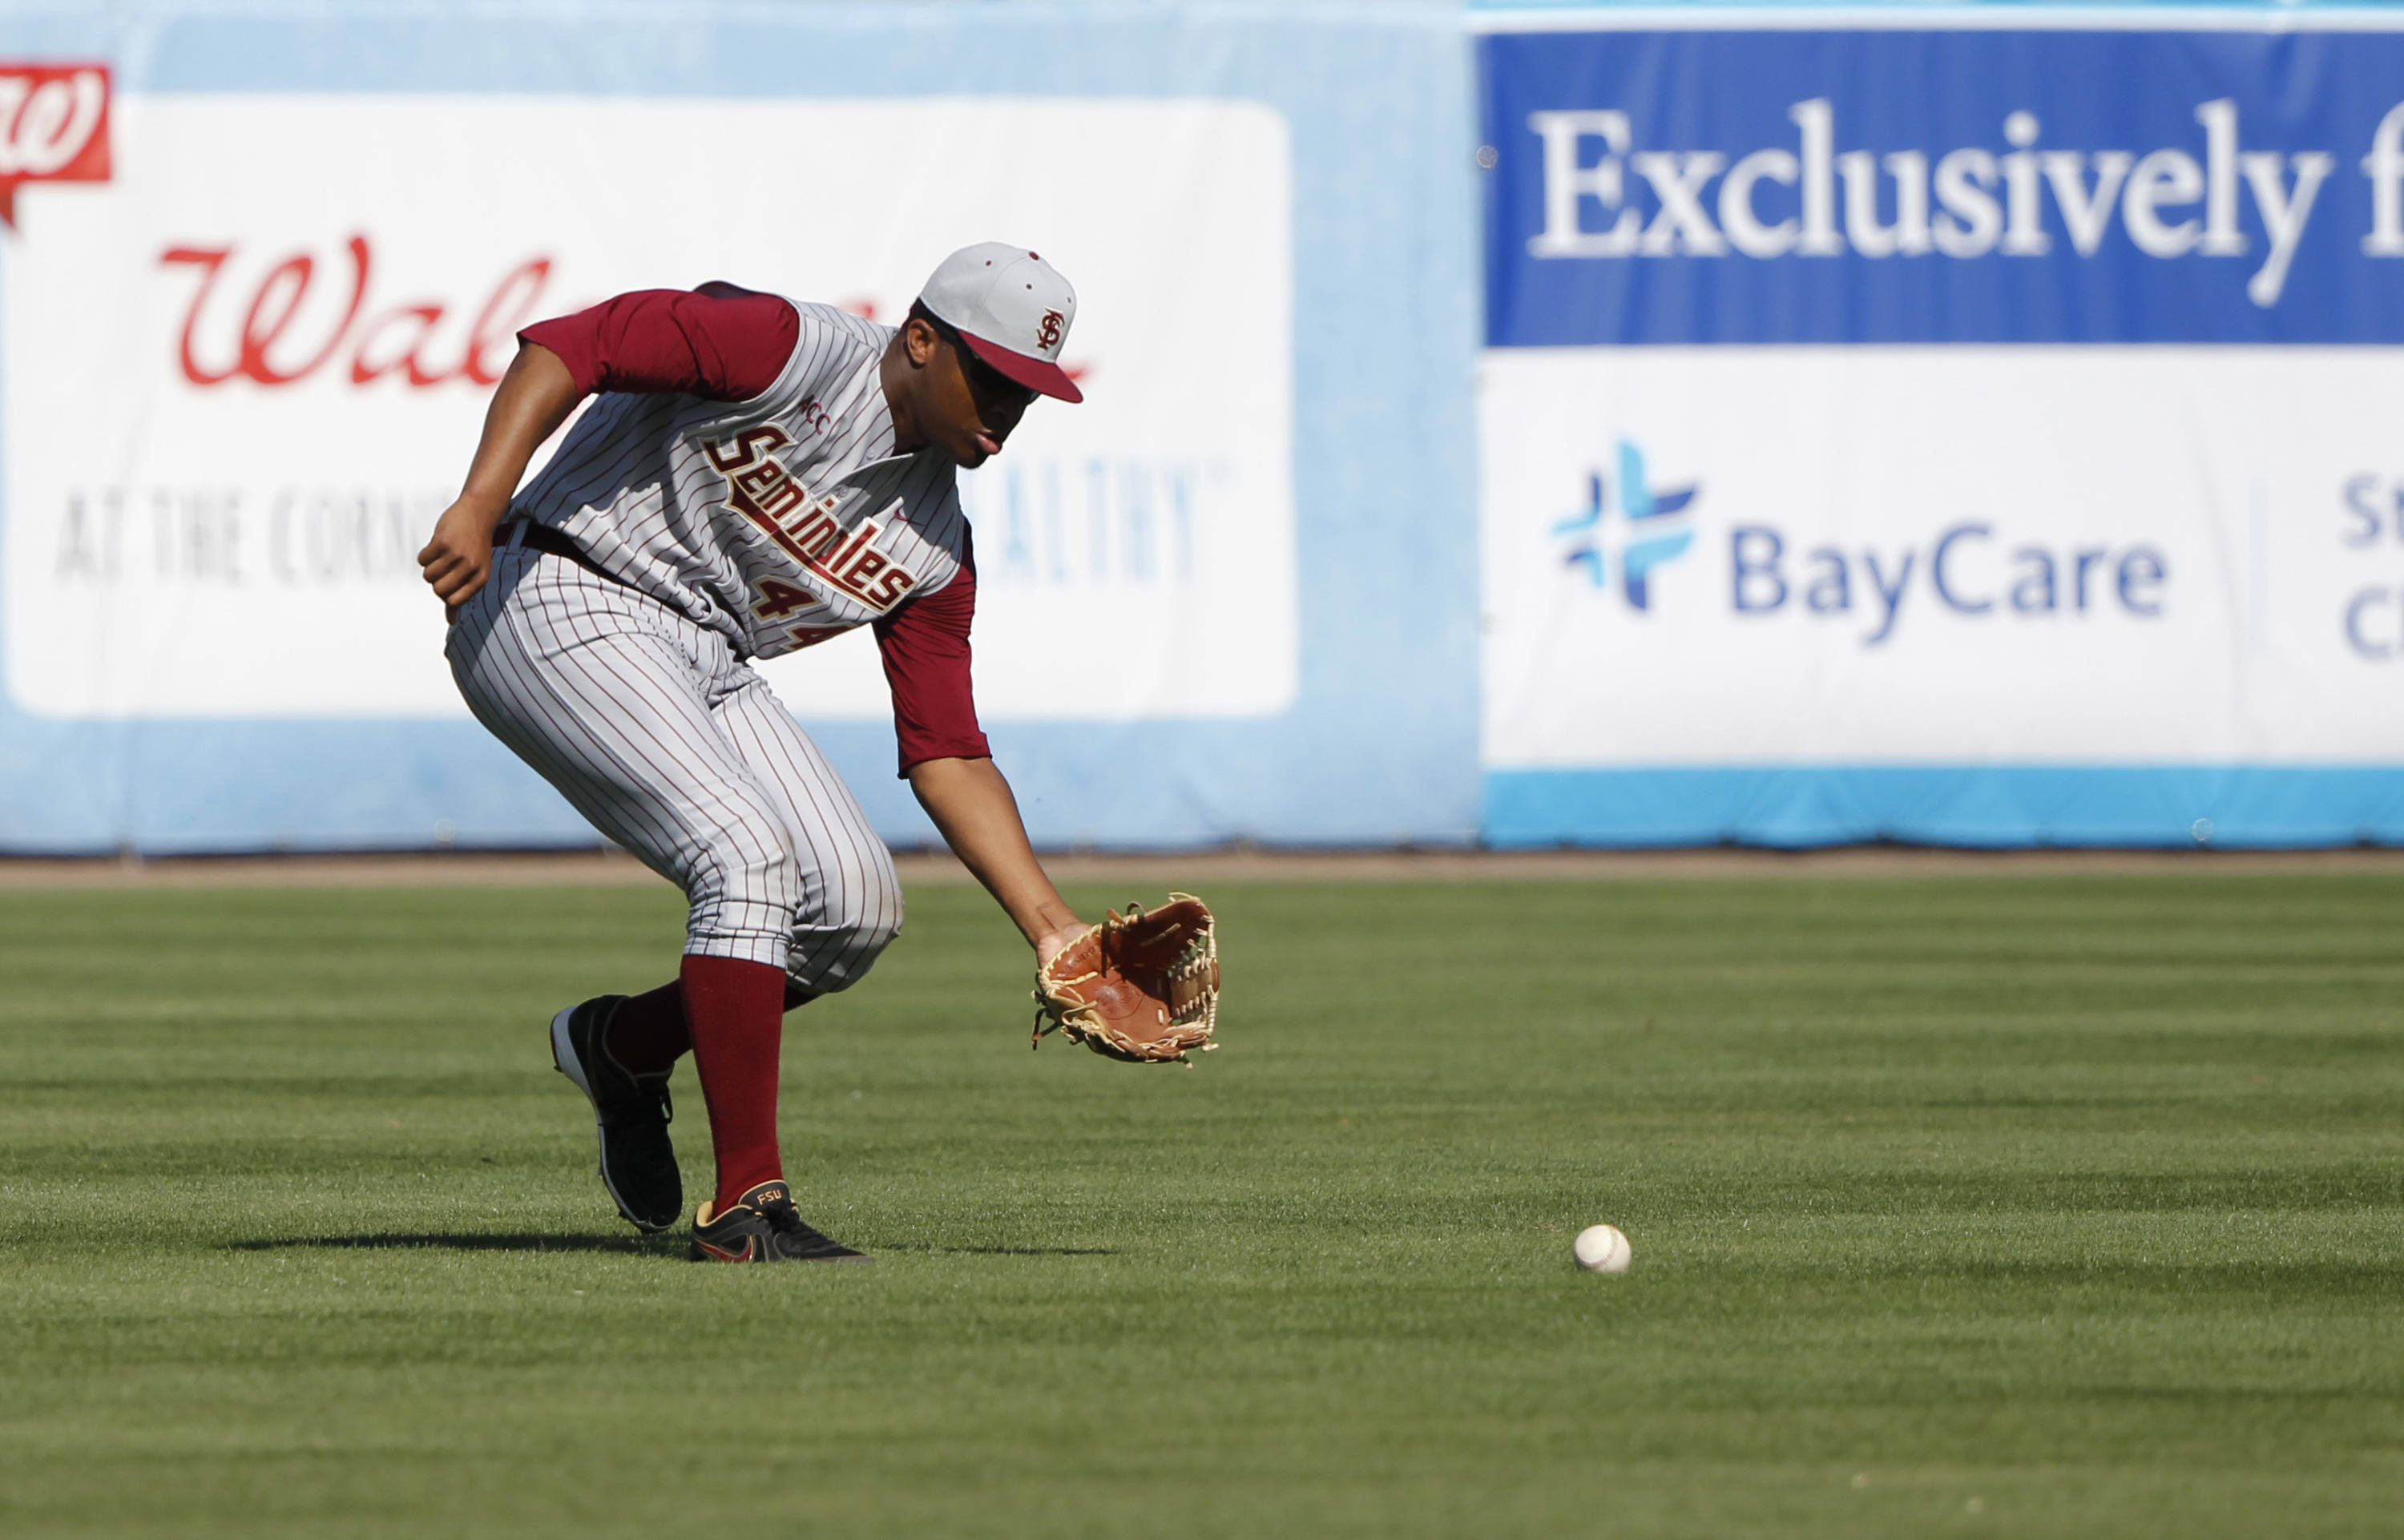 Feb 25, 2014; Tampa, FL, USA; Florida State Seminoles pitcher/outfielder Jameis Winston (44) grounds the ball during the sixth inning against the New York Yankees at George M. Steinbrenner Field. Mandatory Credit: Kim Klement-USA TODAY Sports